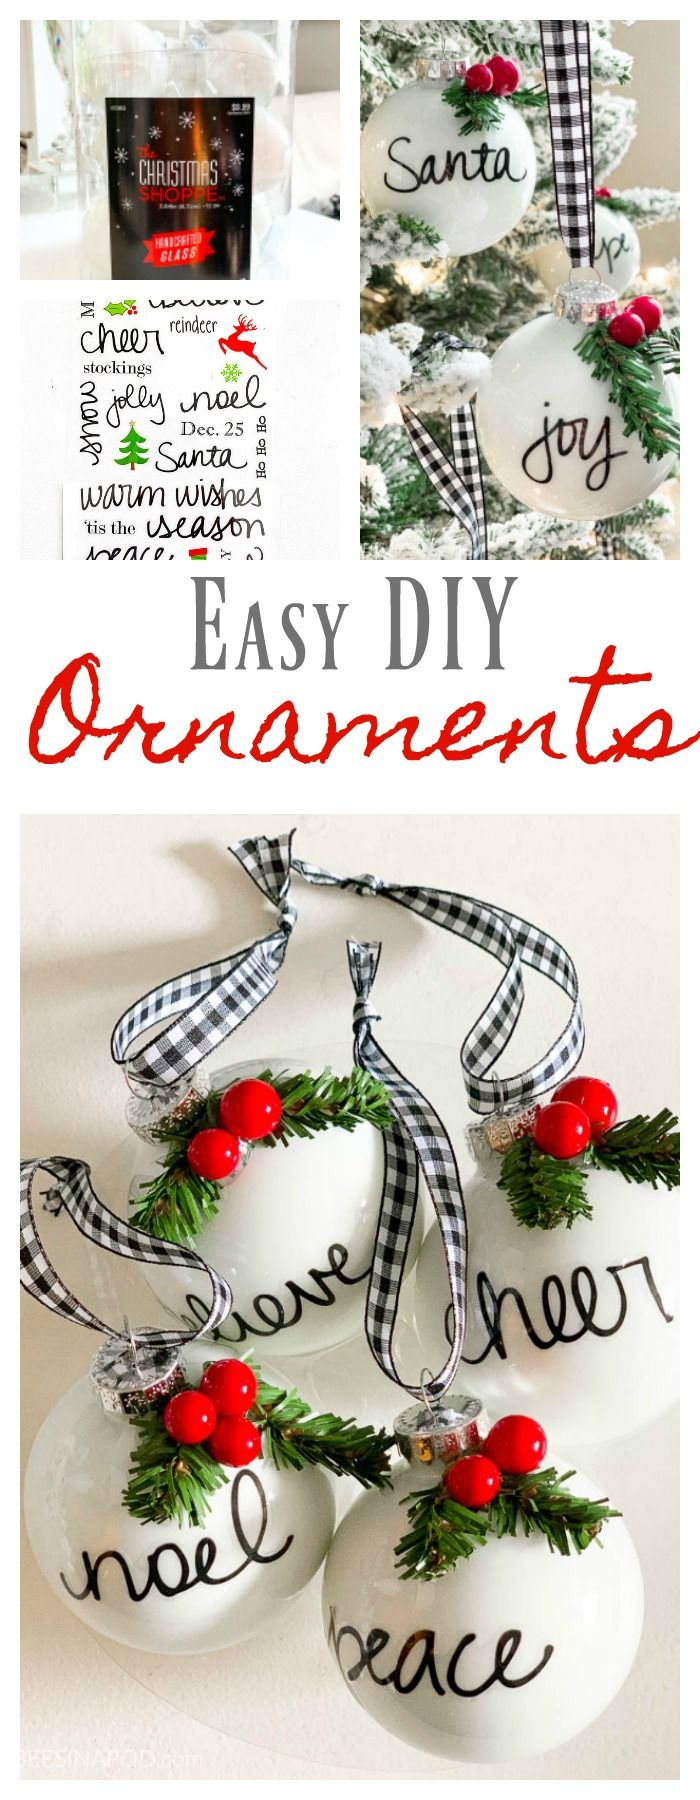 Easy Diy Personalized Christmas Ornaments Thrifty Style Team 2 Bees In A Pod Personalised Christmas Decorations Christmas Ornaments Diy Christmas Ornaments